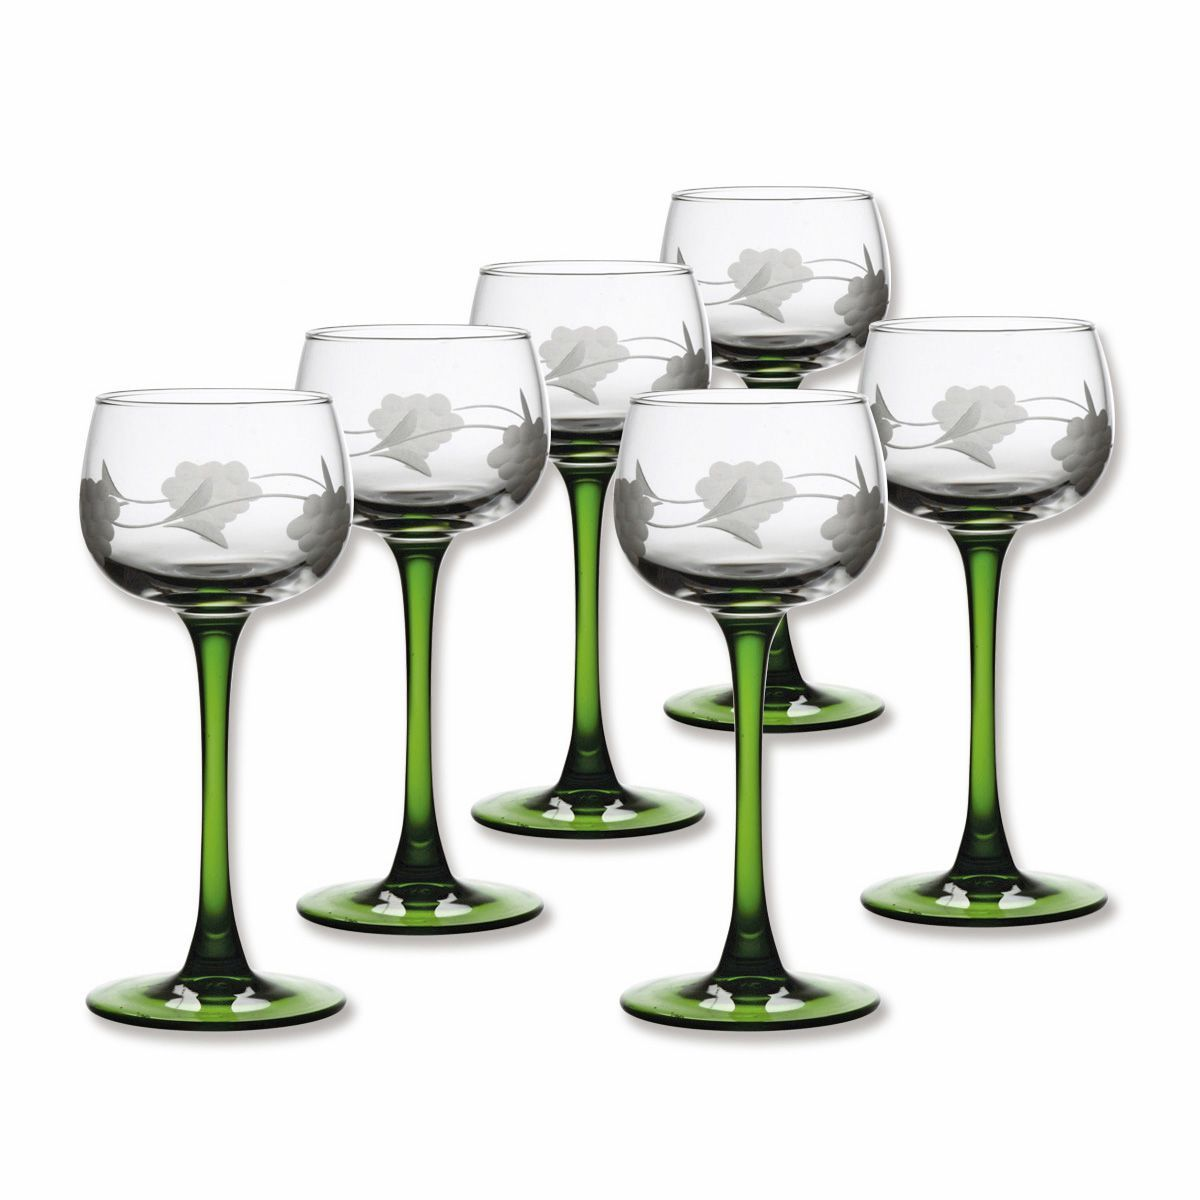 verres vin du rhin coffret de 6 bruno evrard cr ation. Black Bedroom Furniture Sets. Home Design Ideas